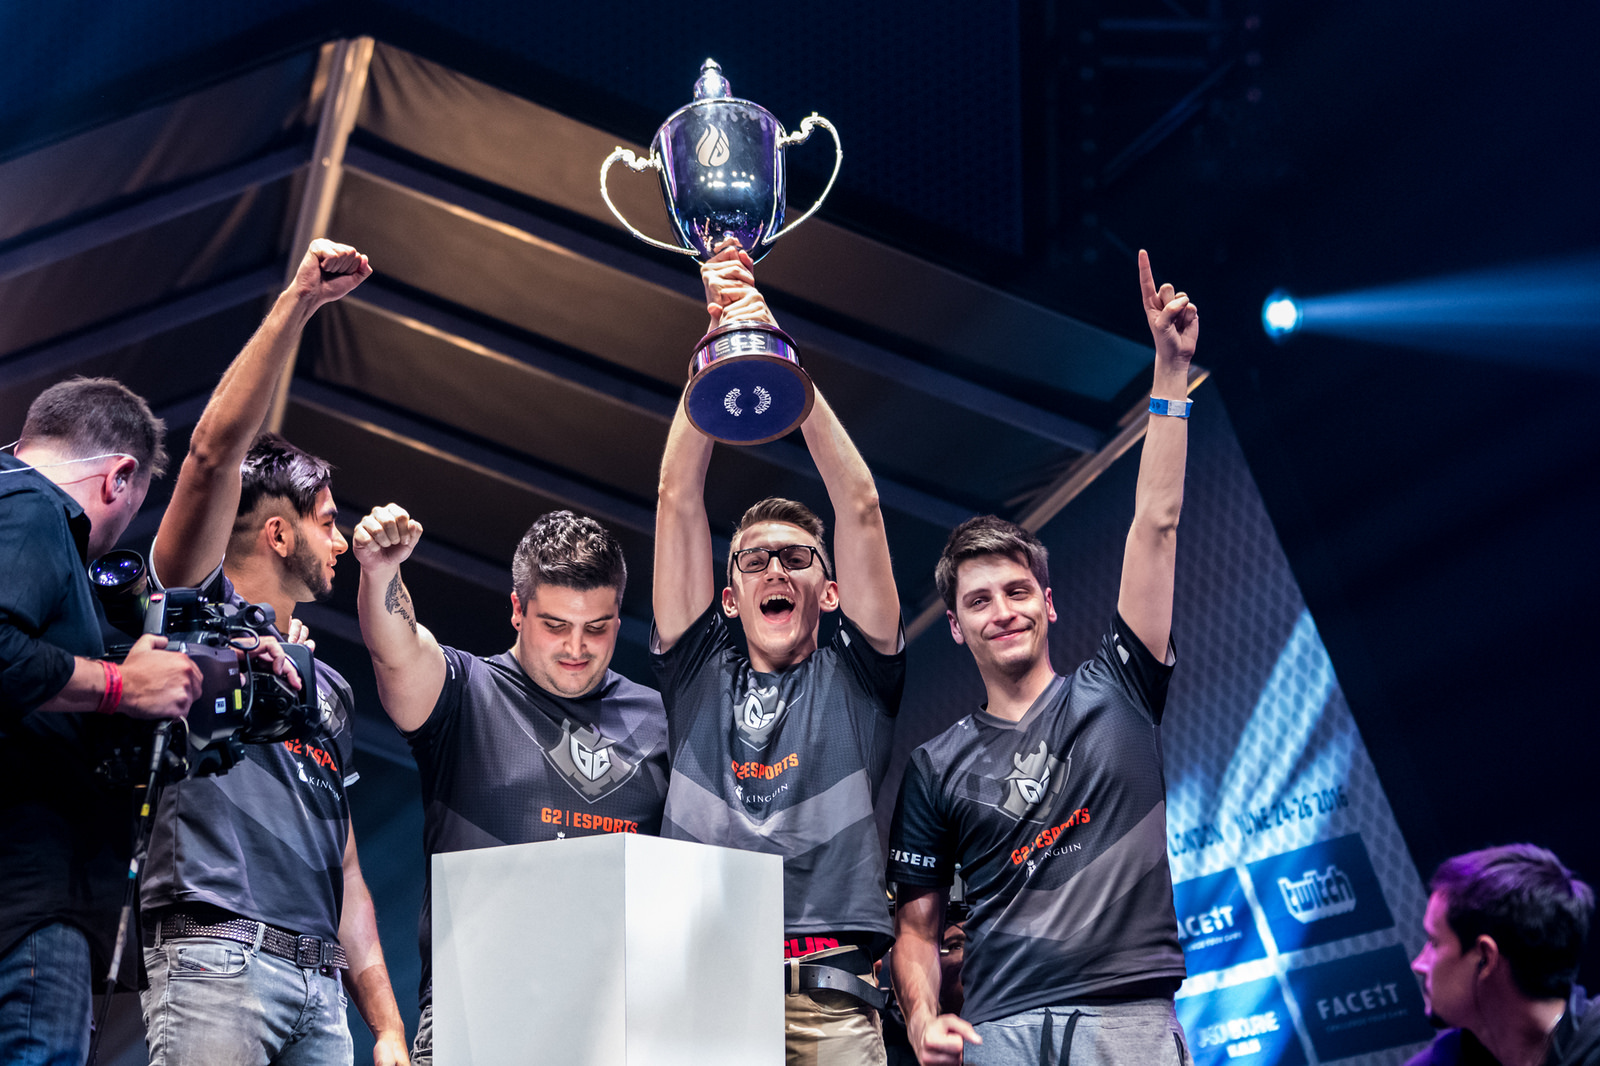 G2 triumphed in London, but will they make it to Anaheim?